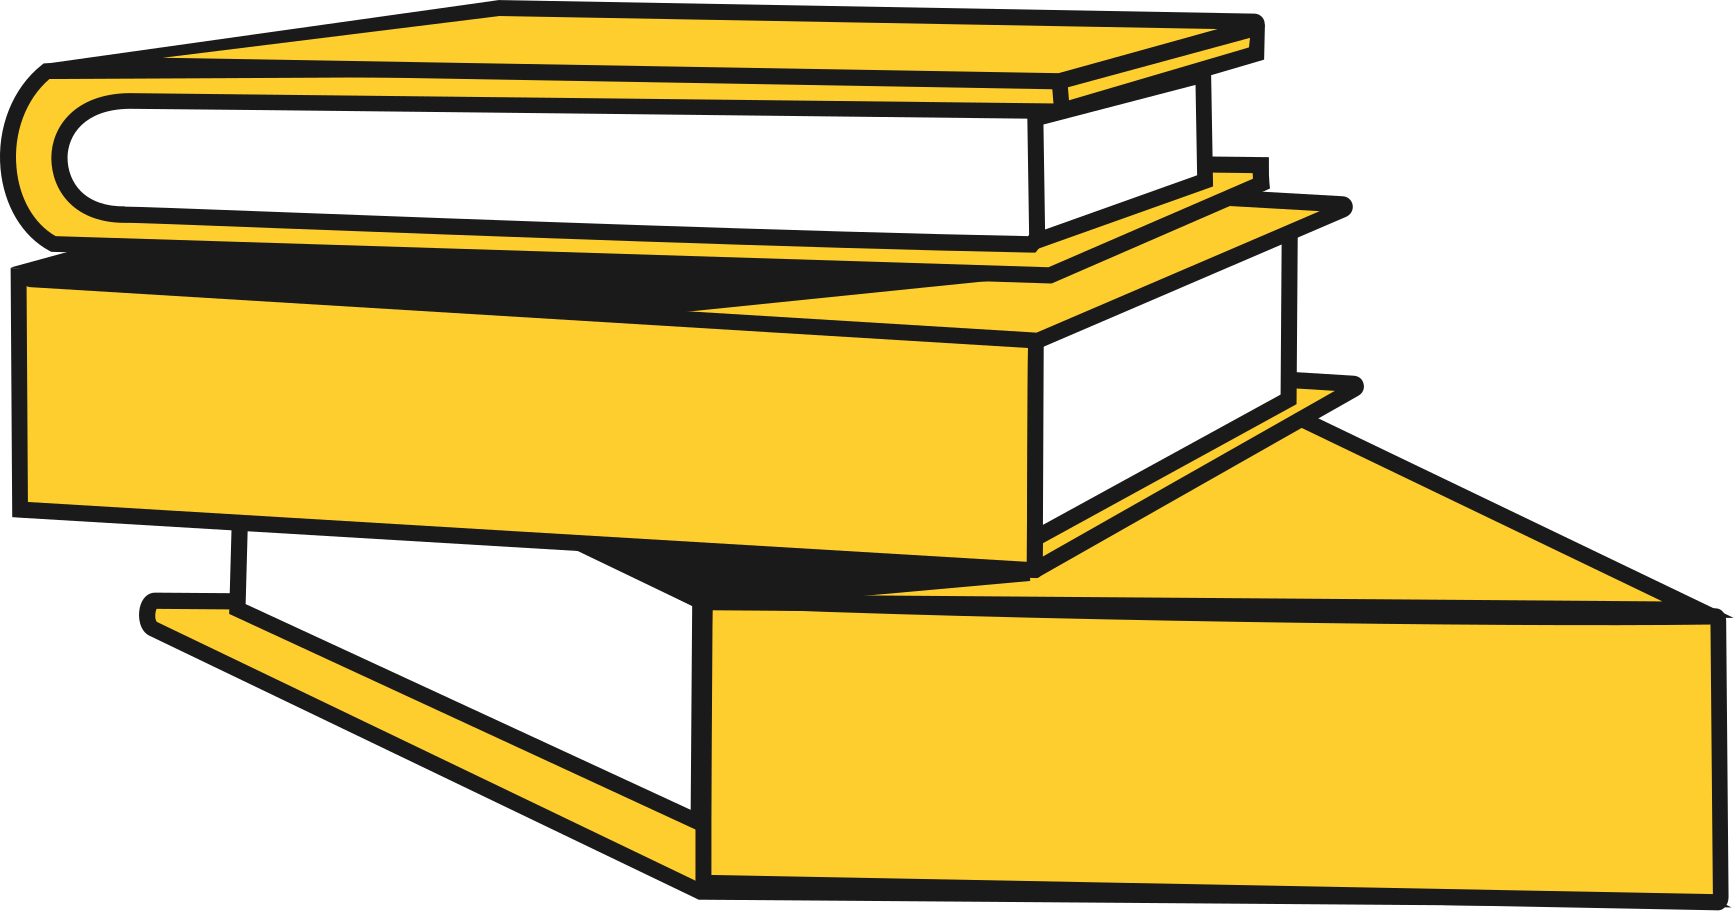 style stack of books Vector images in PNG and SVG   Icons8 Illustrations